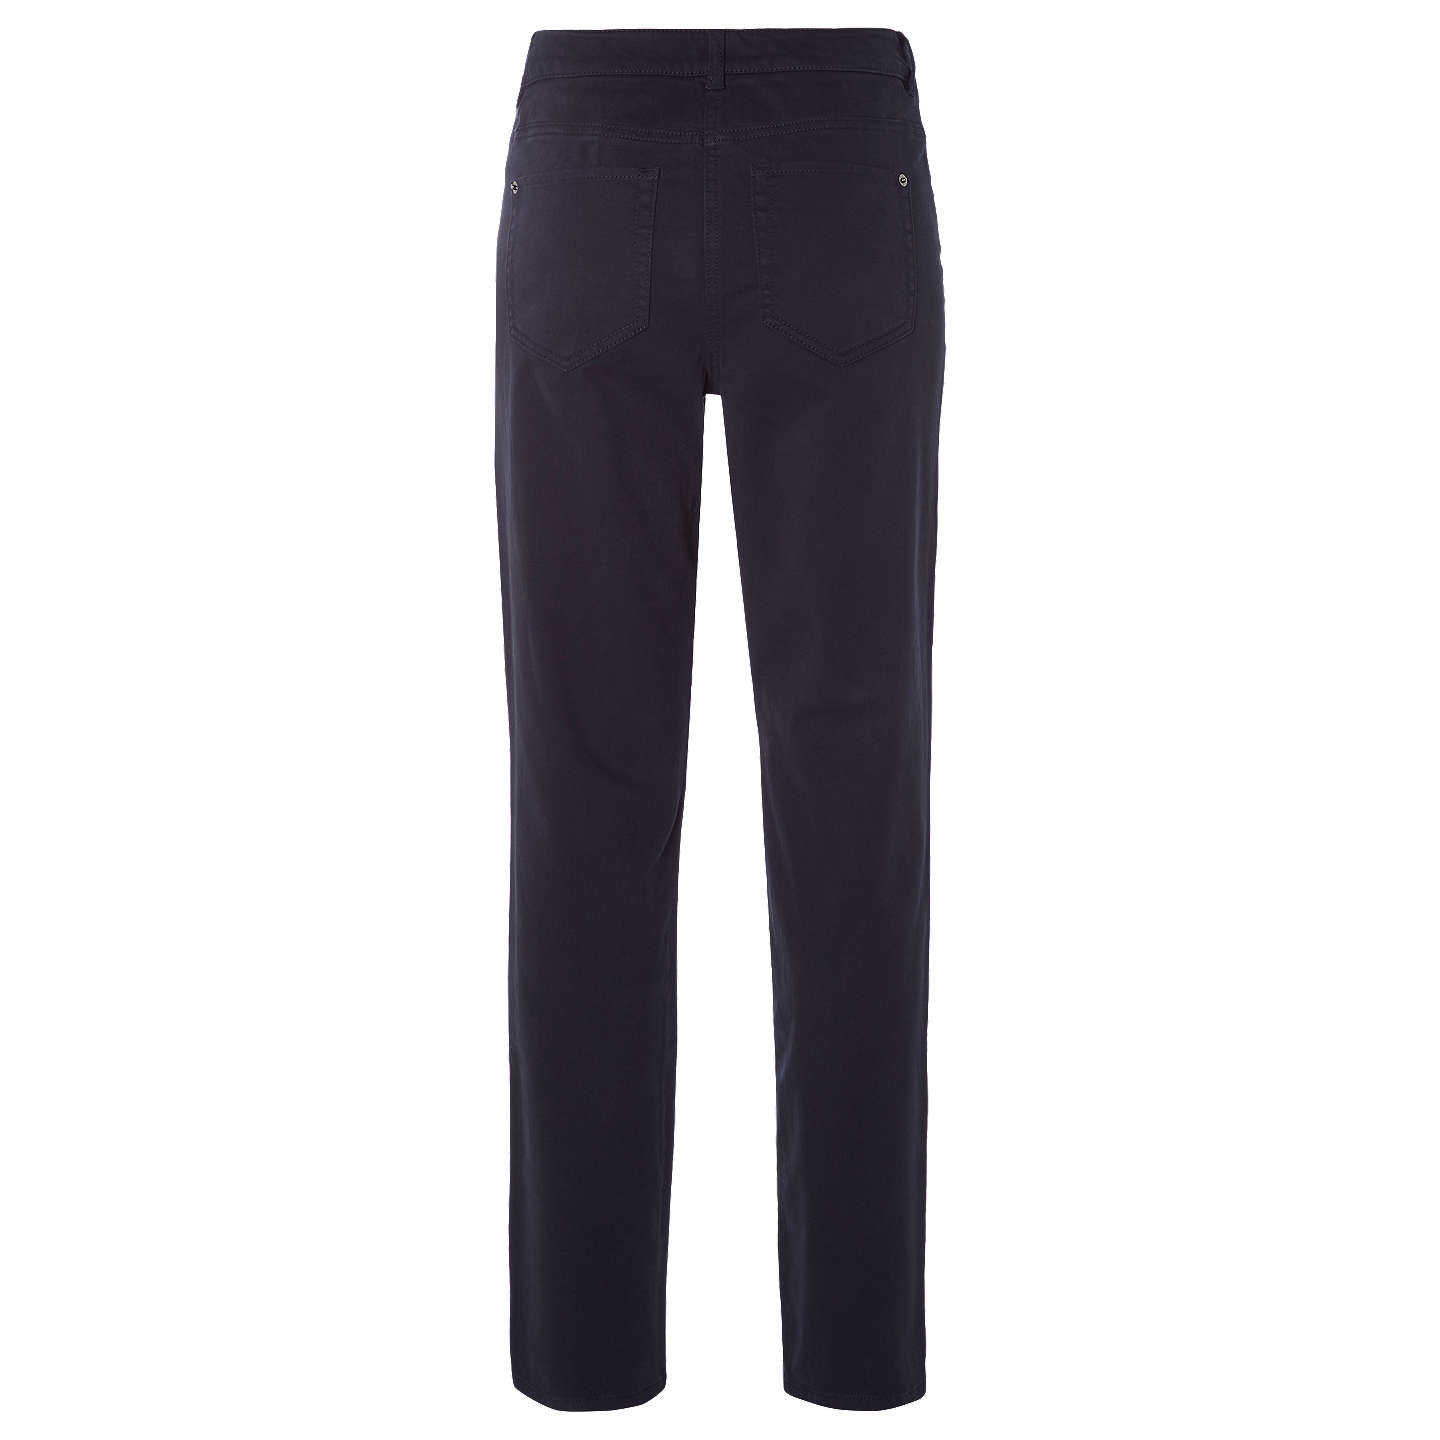 BuyWhite Stuff Oak Peached Slim Trousers, Navy, 10 Online at johnlewis.com